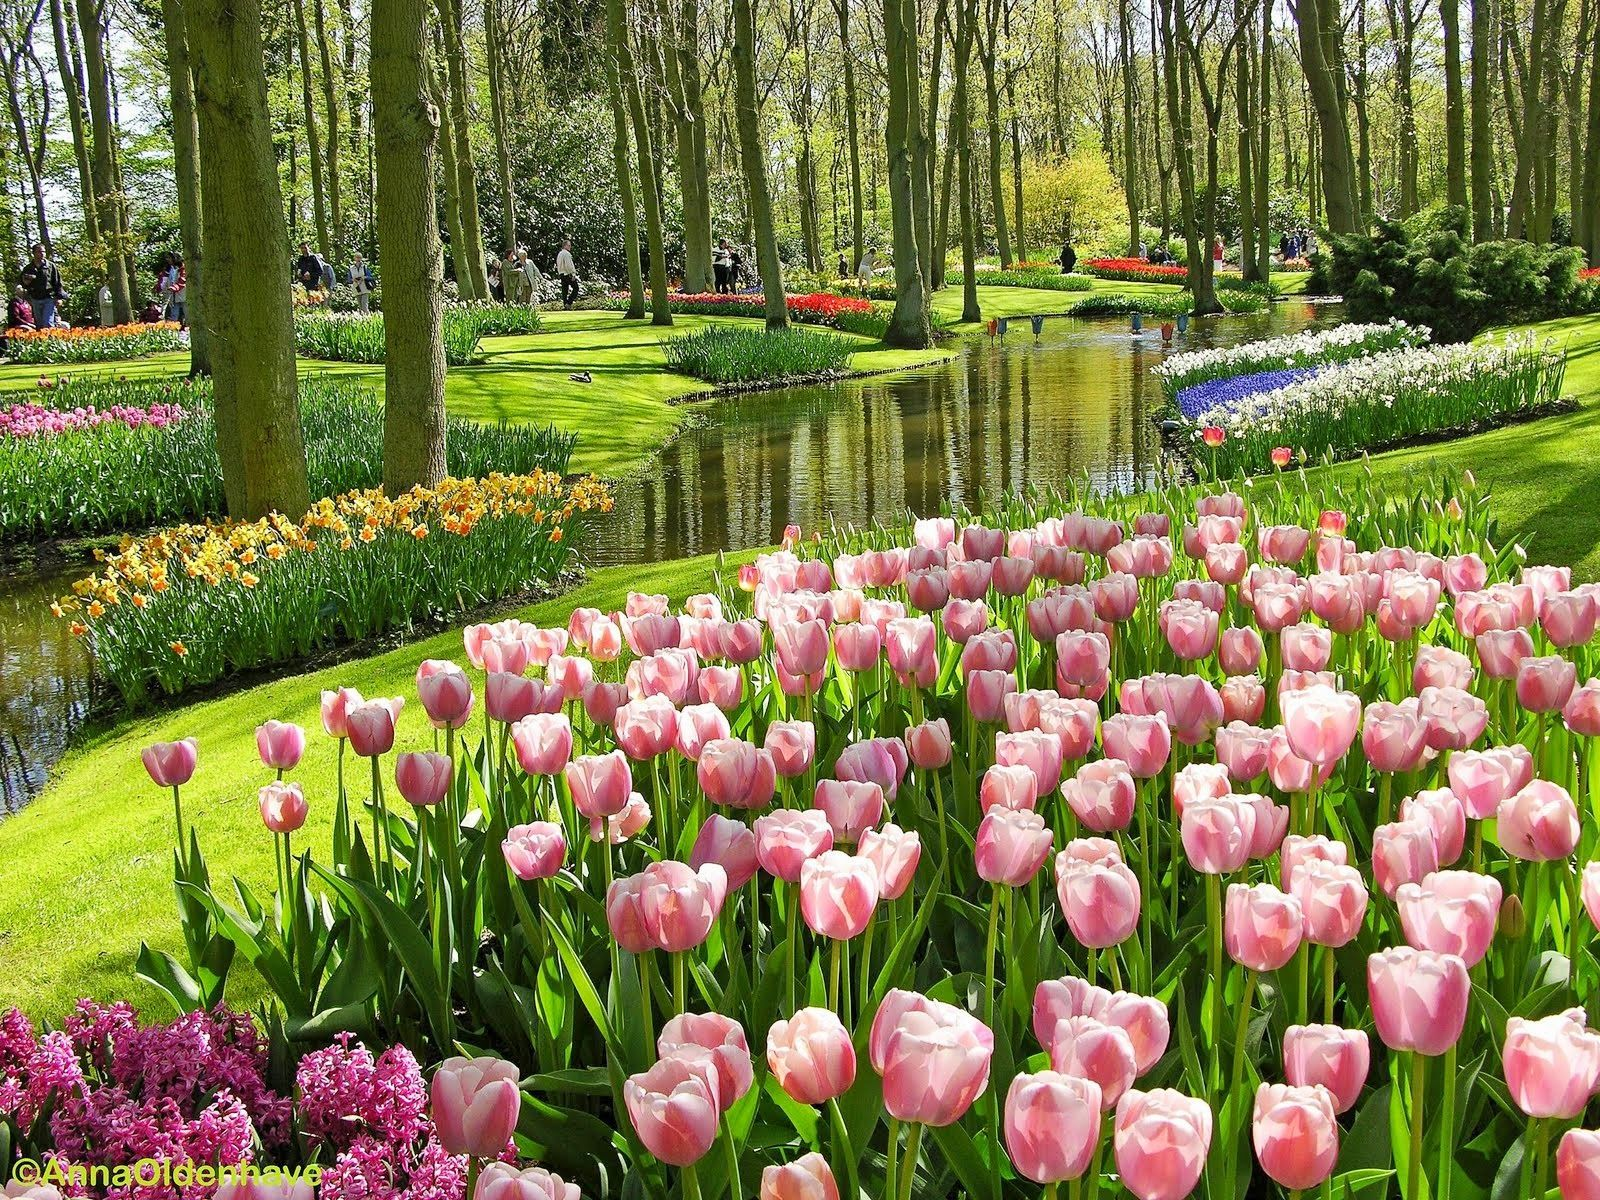 Gambar Taman Bunga Pink Tulips Places To Visit Pinterest Pink Tulips Tulip And Pink